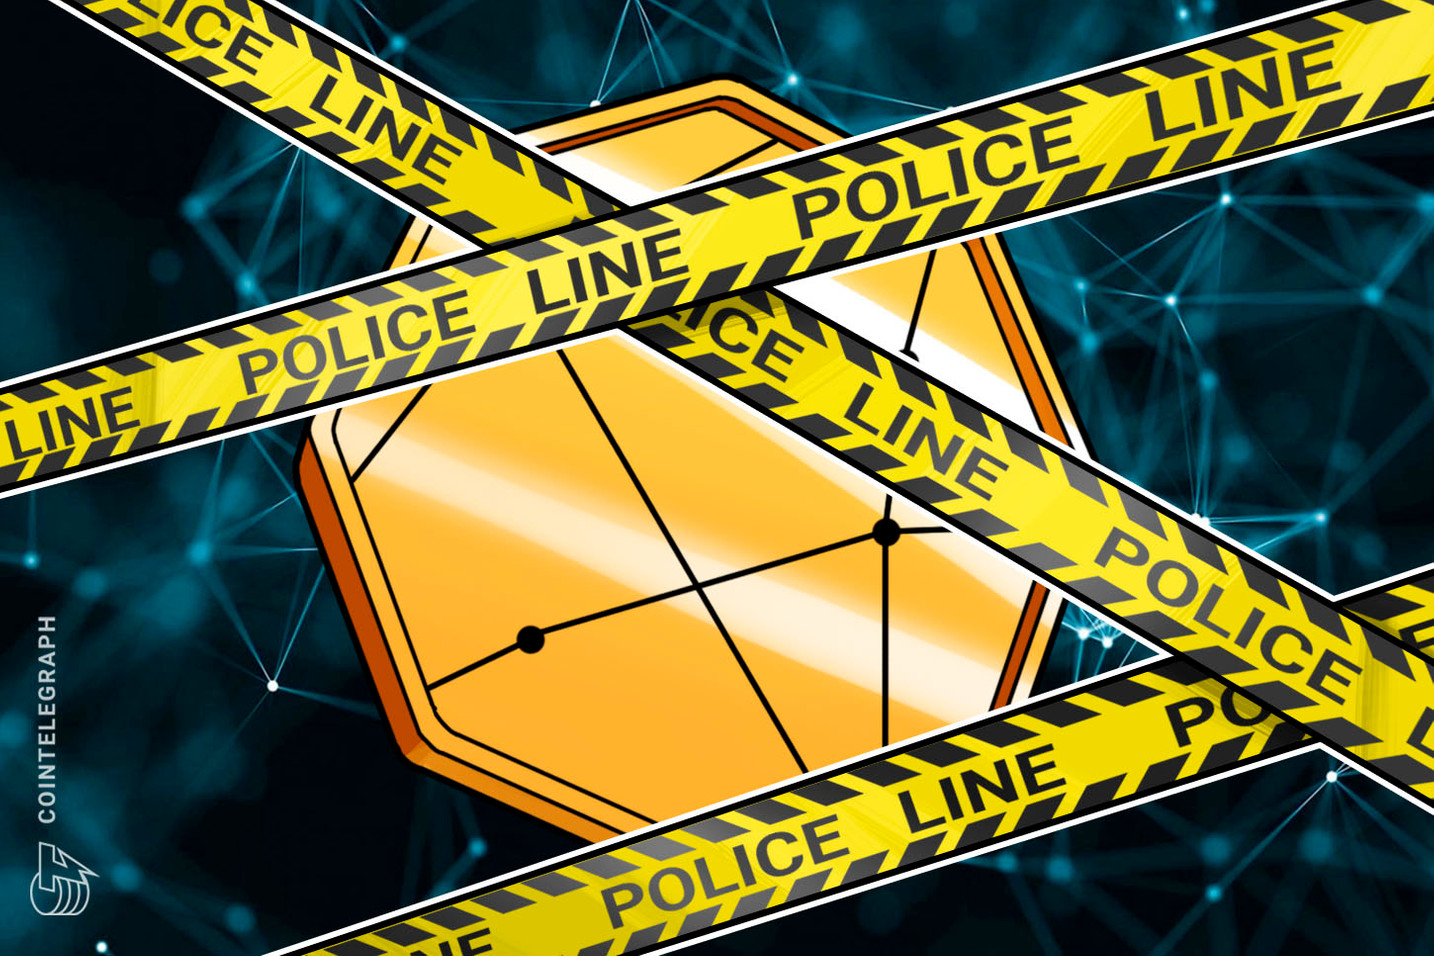 Binance Crypto Exchange Shares Scoop on Embezzlement Claims